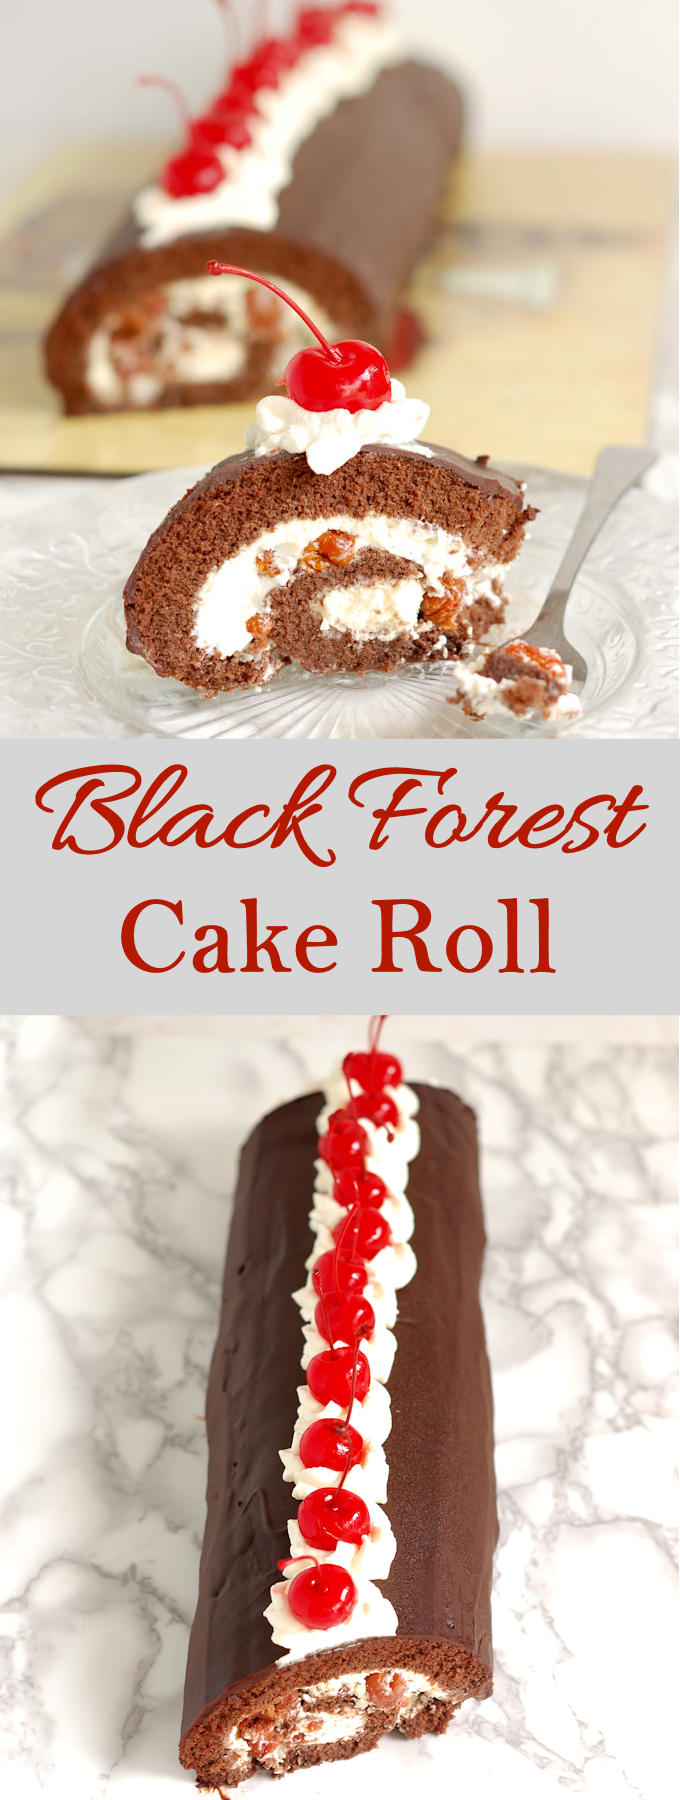 Black Forest Cake roll with chocolate sponge cake with detailed instructions and a video.